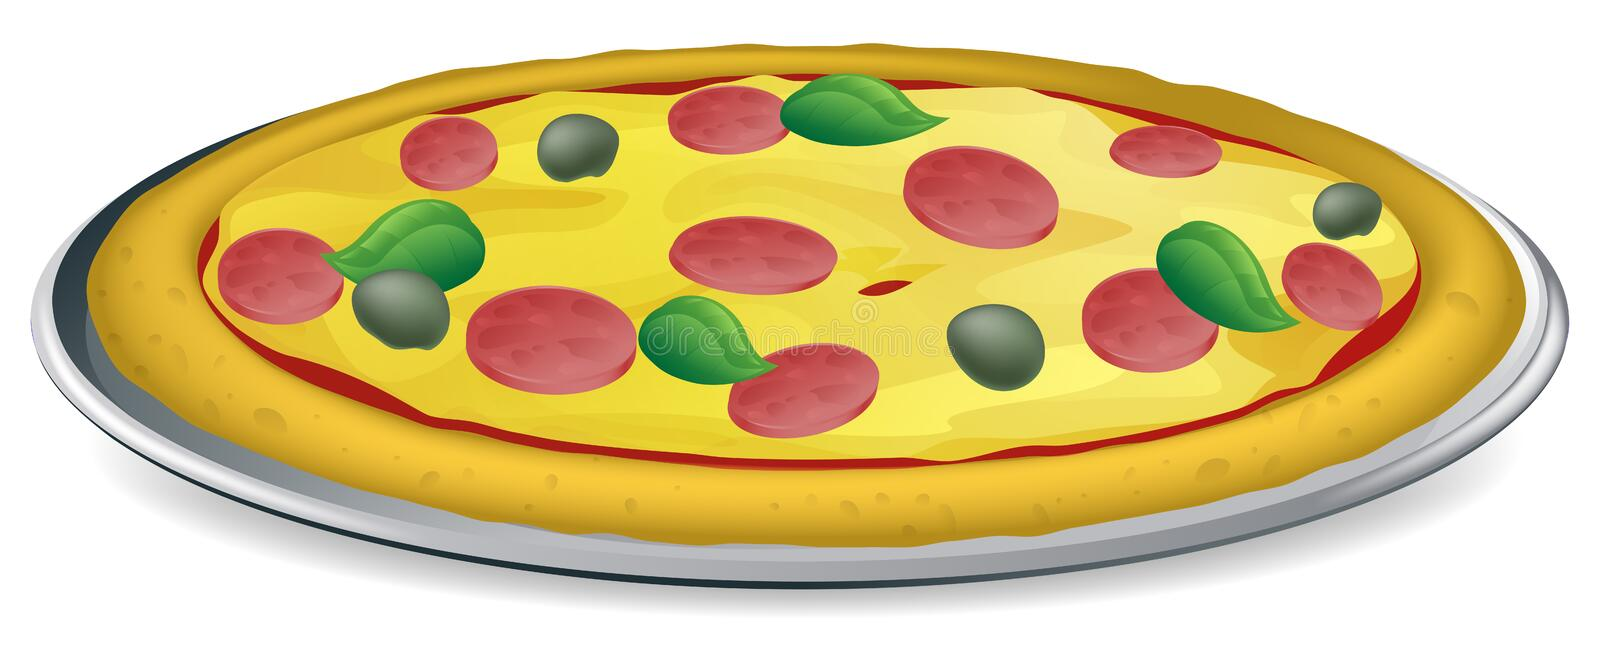 Download De Illustratie Van De Pizza Stock Foto - Afbeelding: 24168670